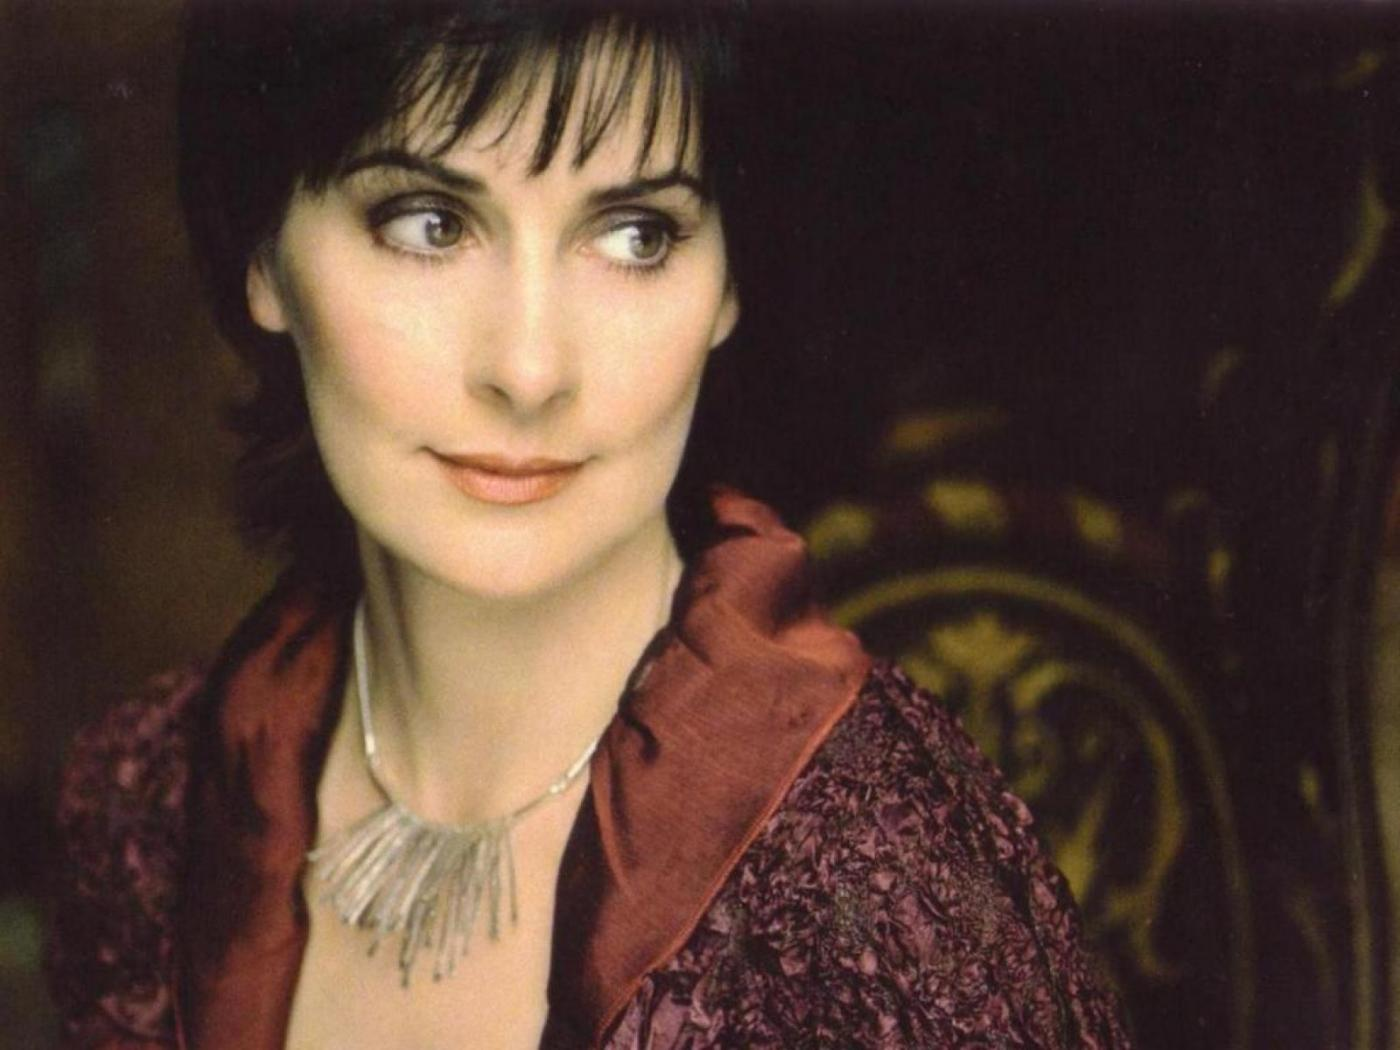 ENYA 1400x1050 Wallpapers 1400x1050 Wallpapers Pictures 1400x1050